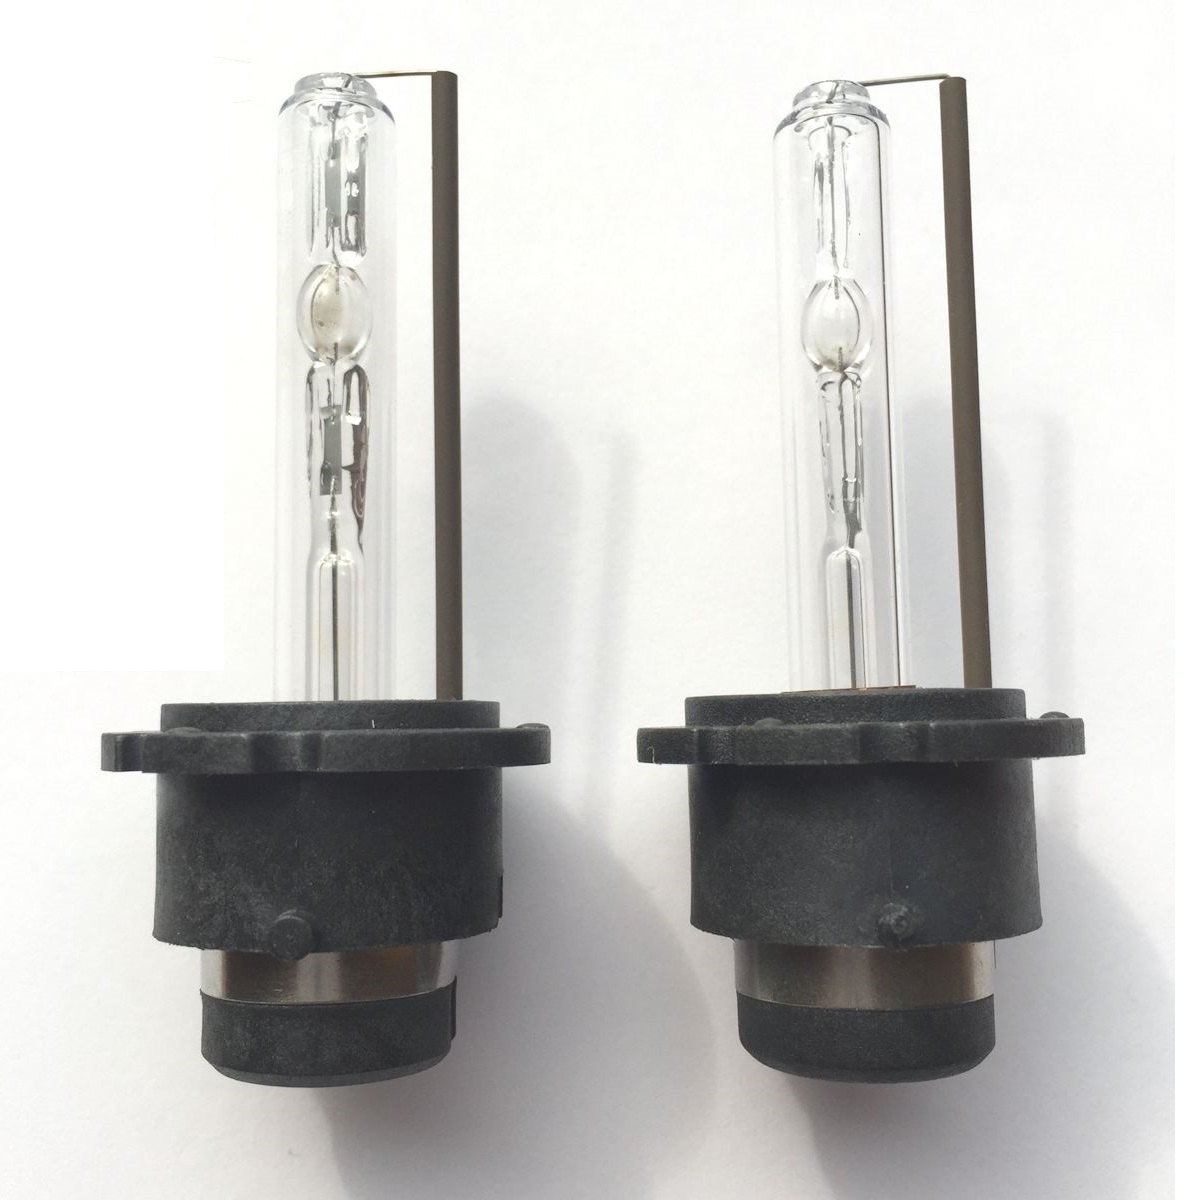 2x D2R 6000K White 35W HID Replacement Bulbs for Car Truck SUV Bright Headlights